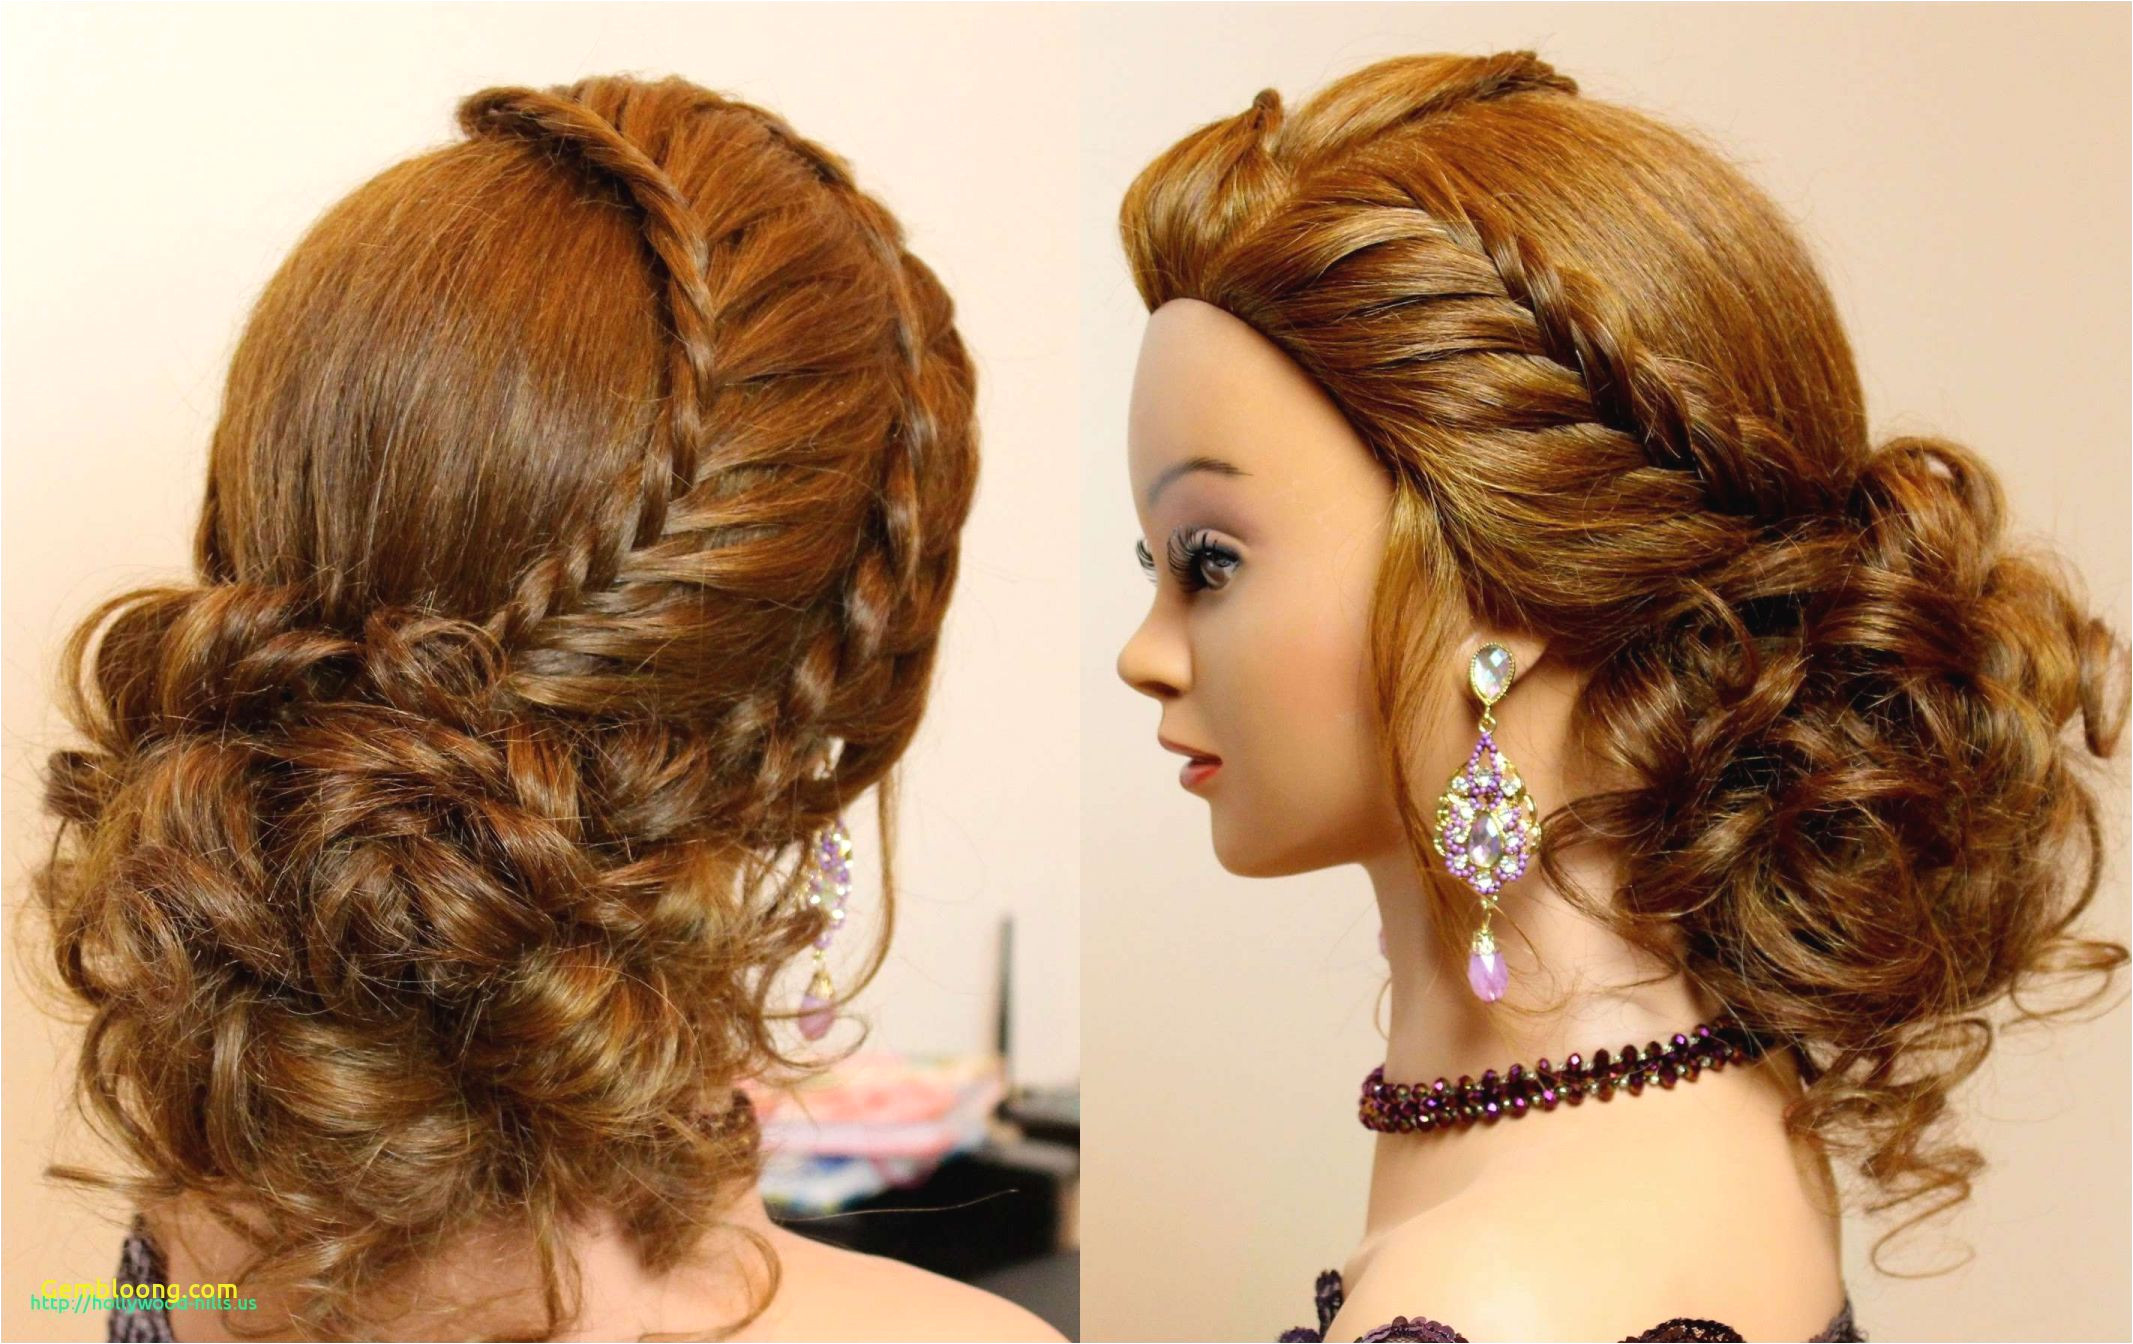 80s Prom Hairstyles Beautiful Elegant evening Hairstyles for Long Hair Awesome Haircuts 0d 80s